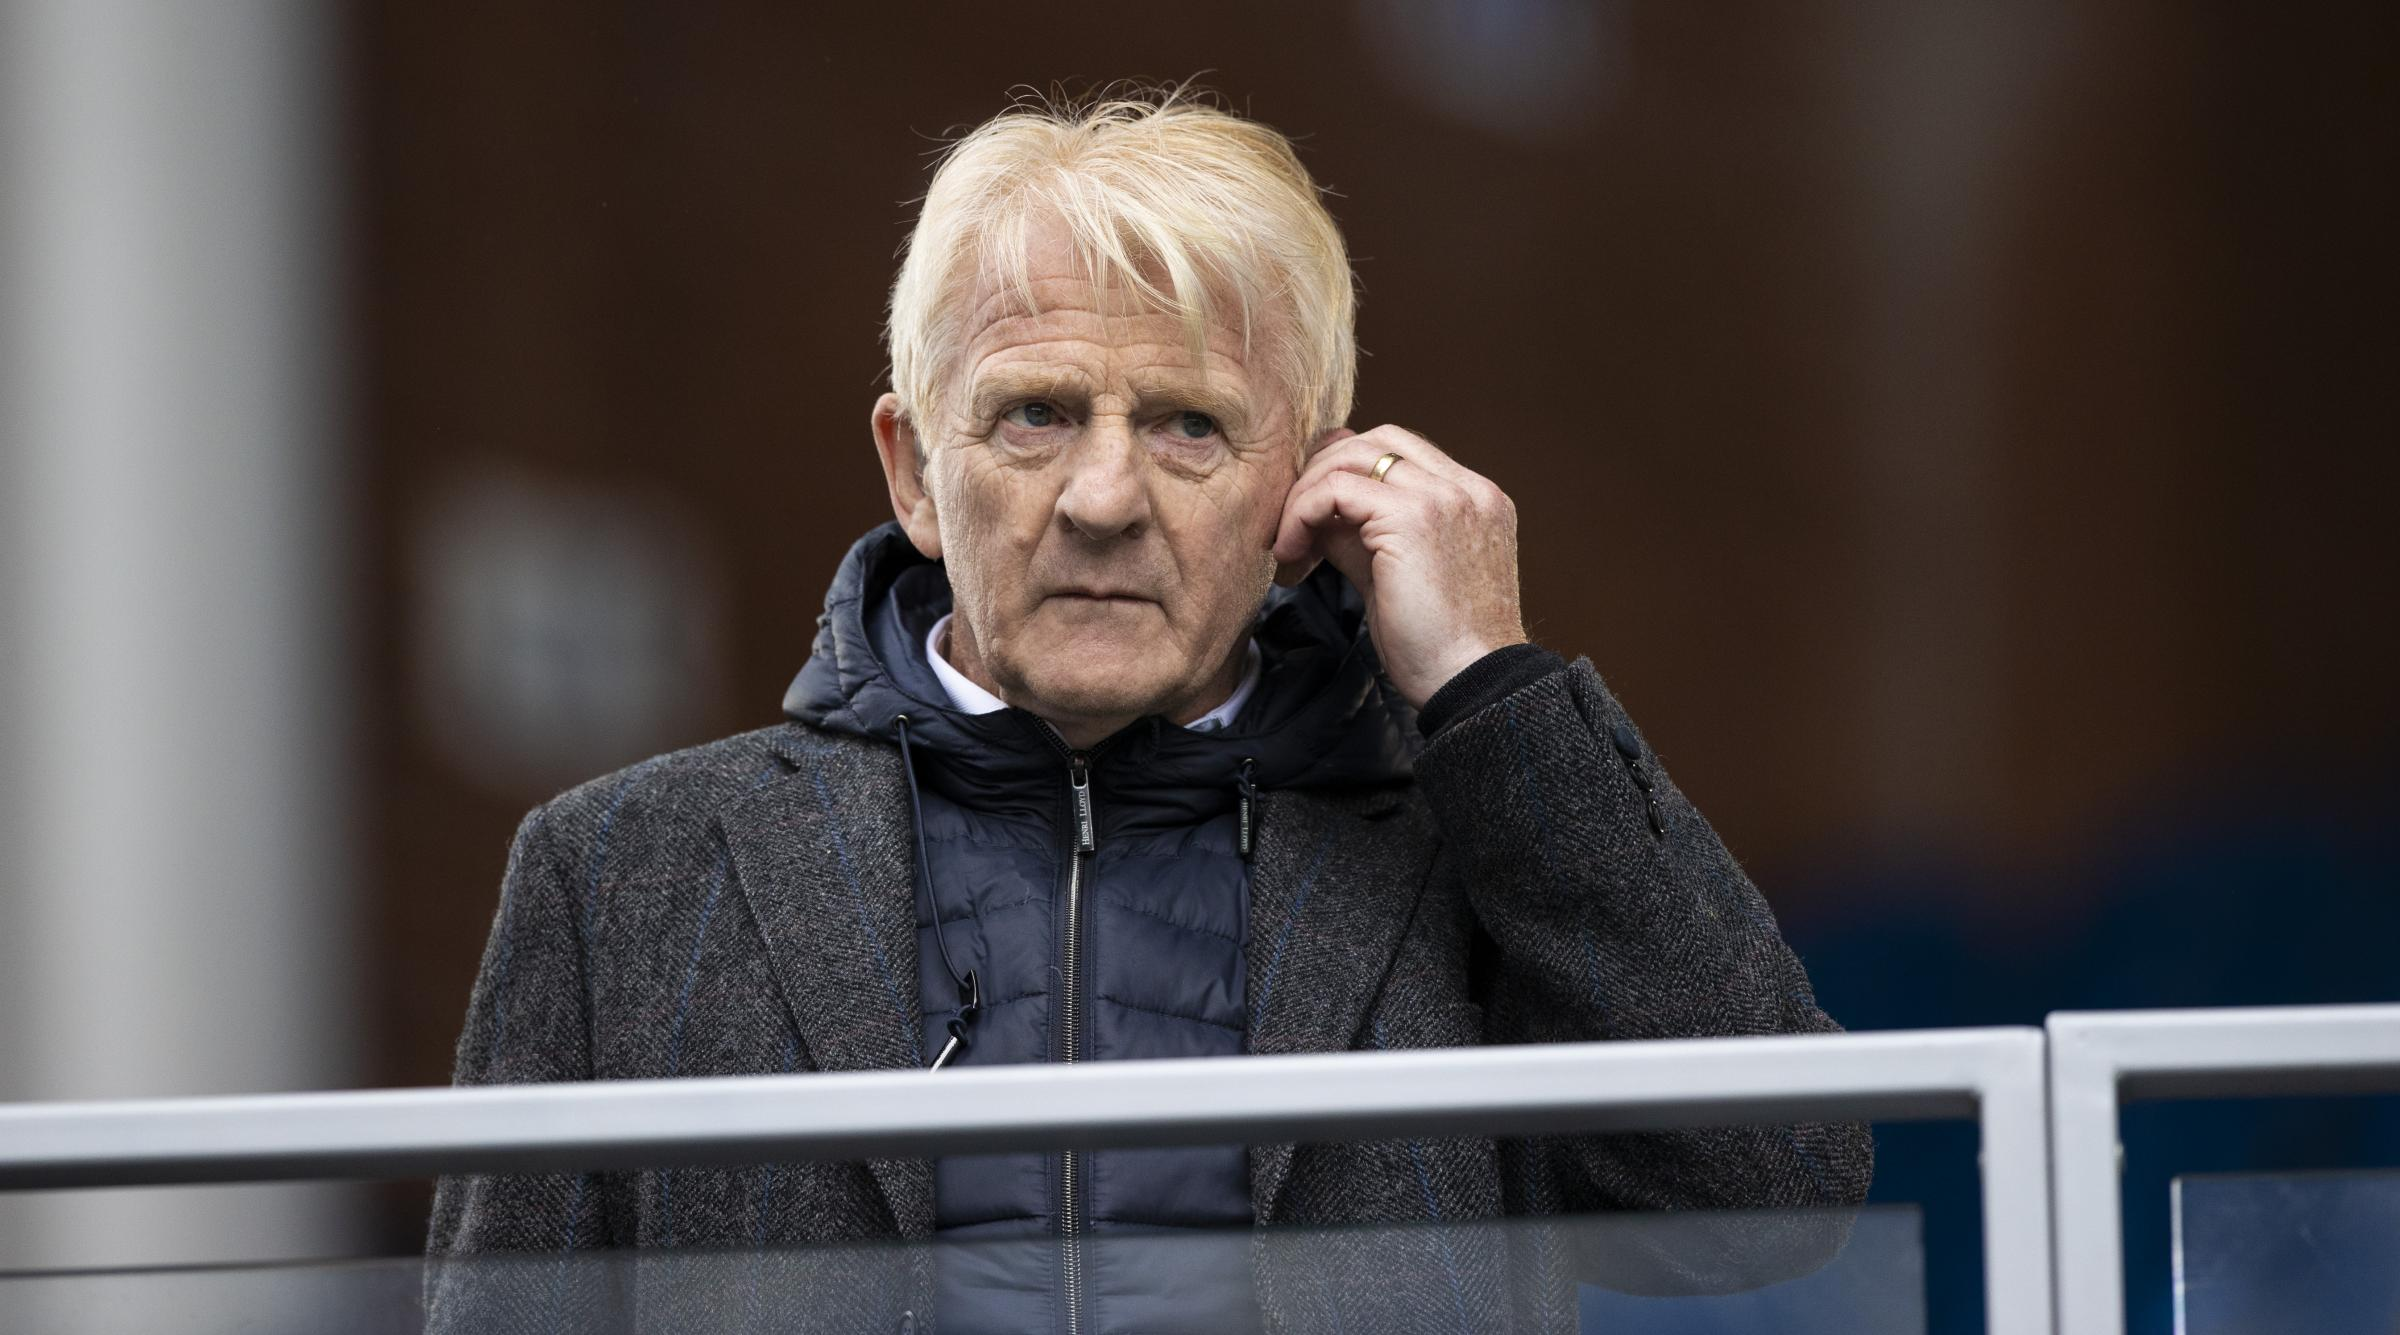 Gordon Strachan's Celtic and Dundee dual role probed by SFA over potential conflict